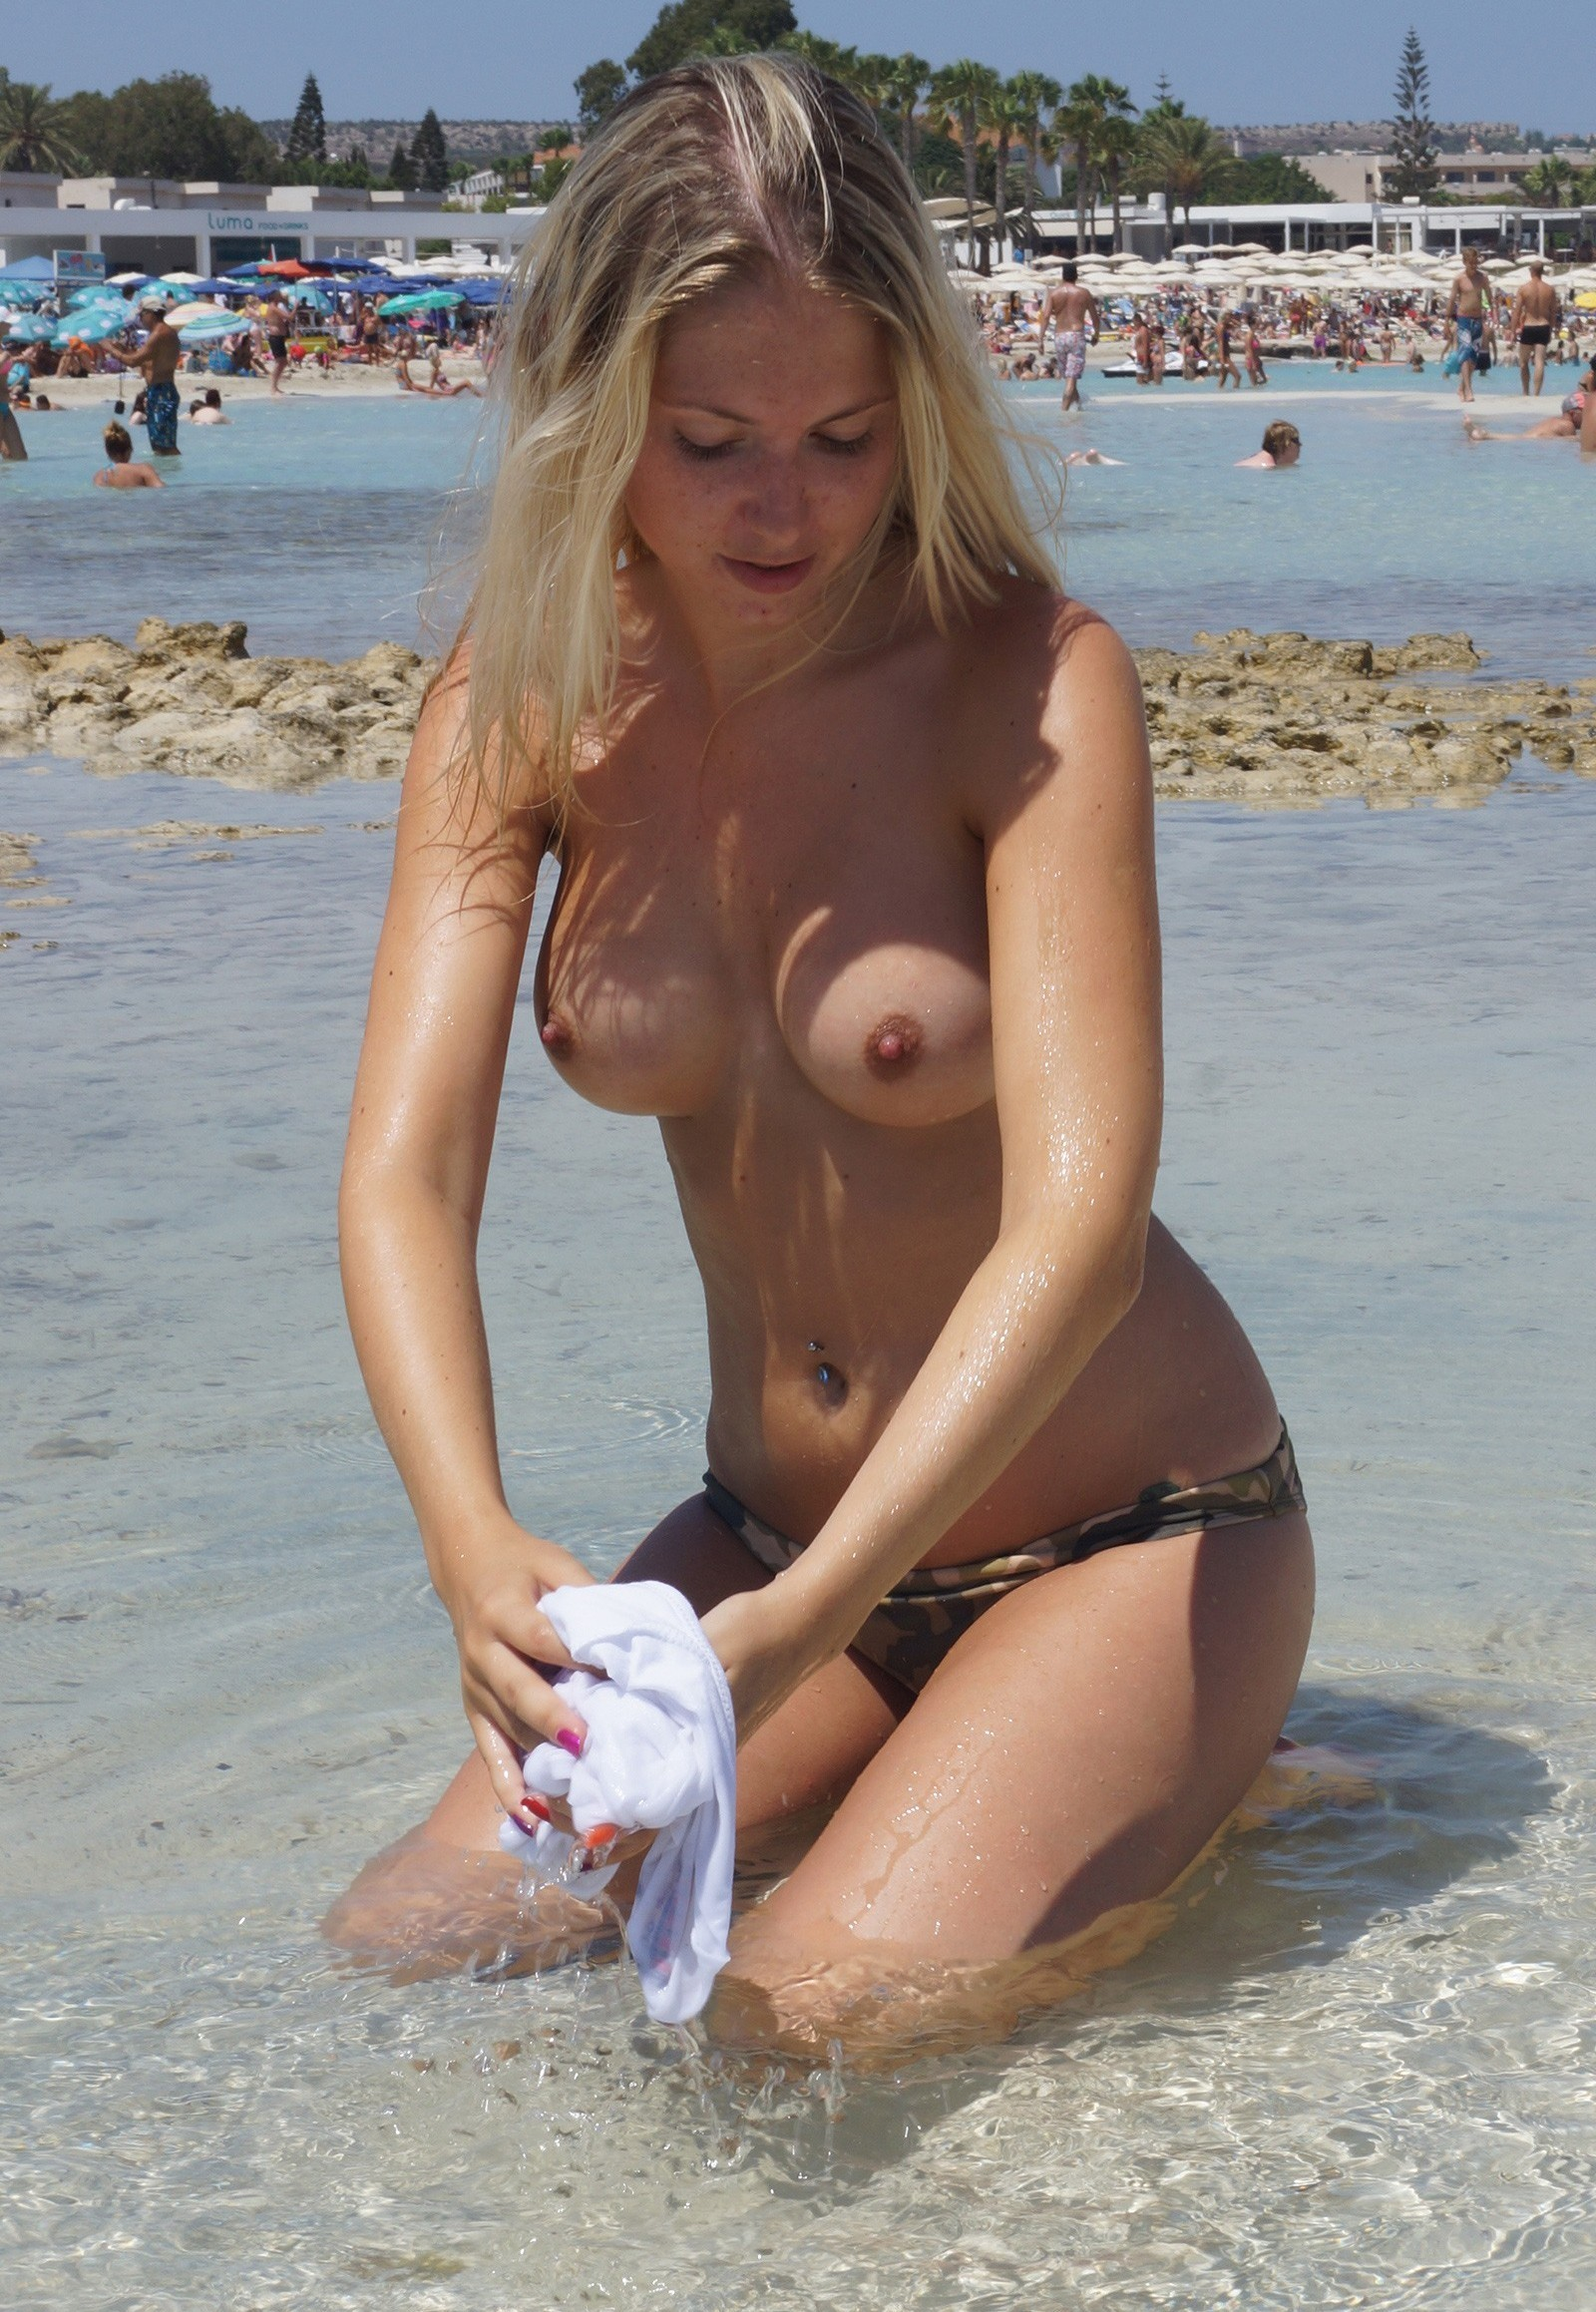 nudists-girls-boobs-beach-topless-mix-vol7-60